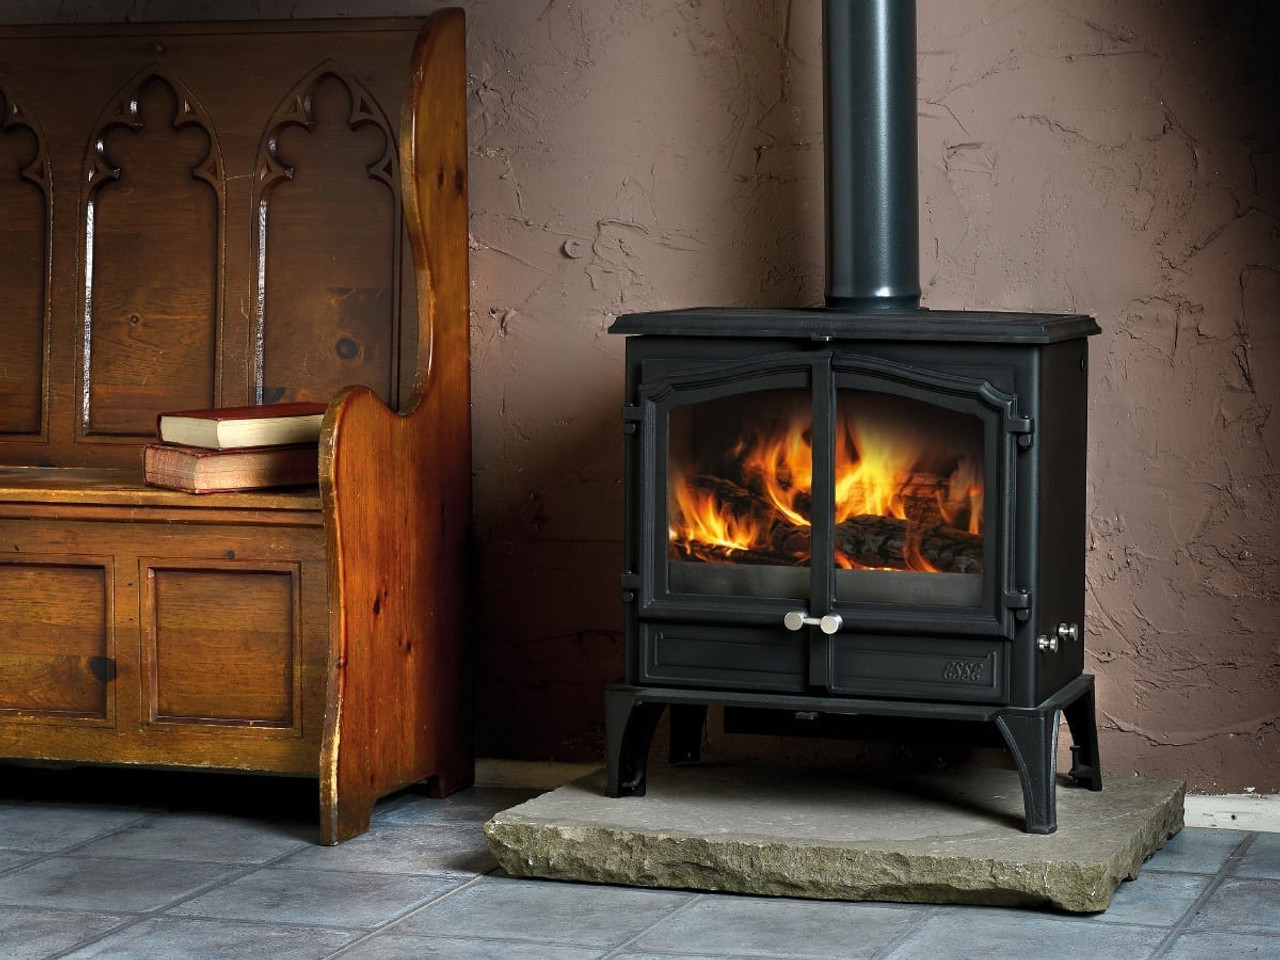 Esse 200 Double Sided 7.5kw Stove